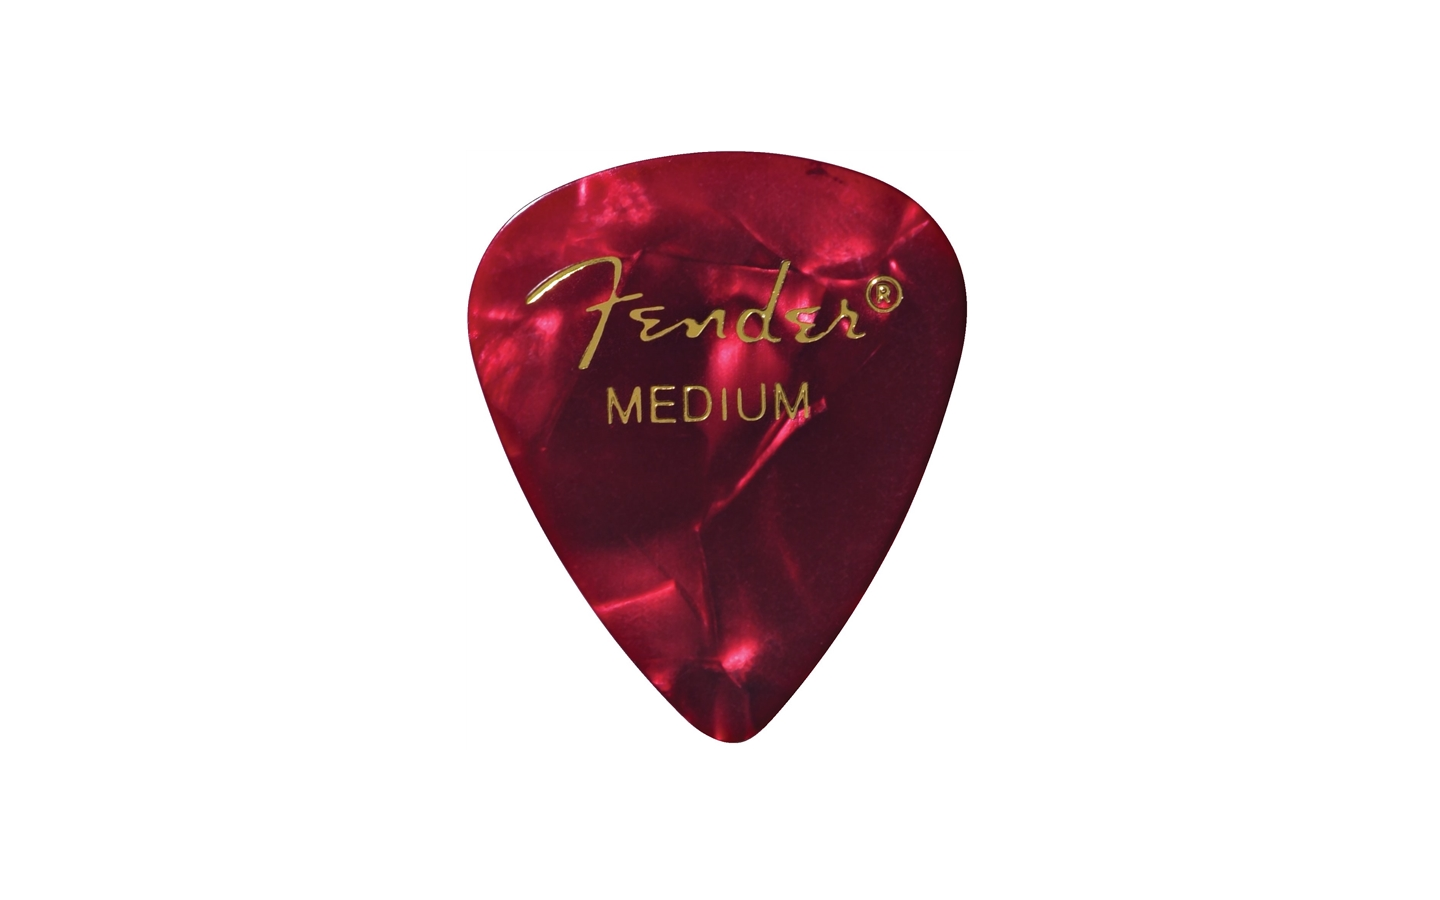 Fender Red Moto Pick 351 MEDIUM PACK (12pz.)